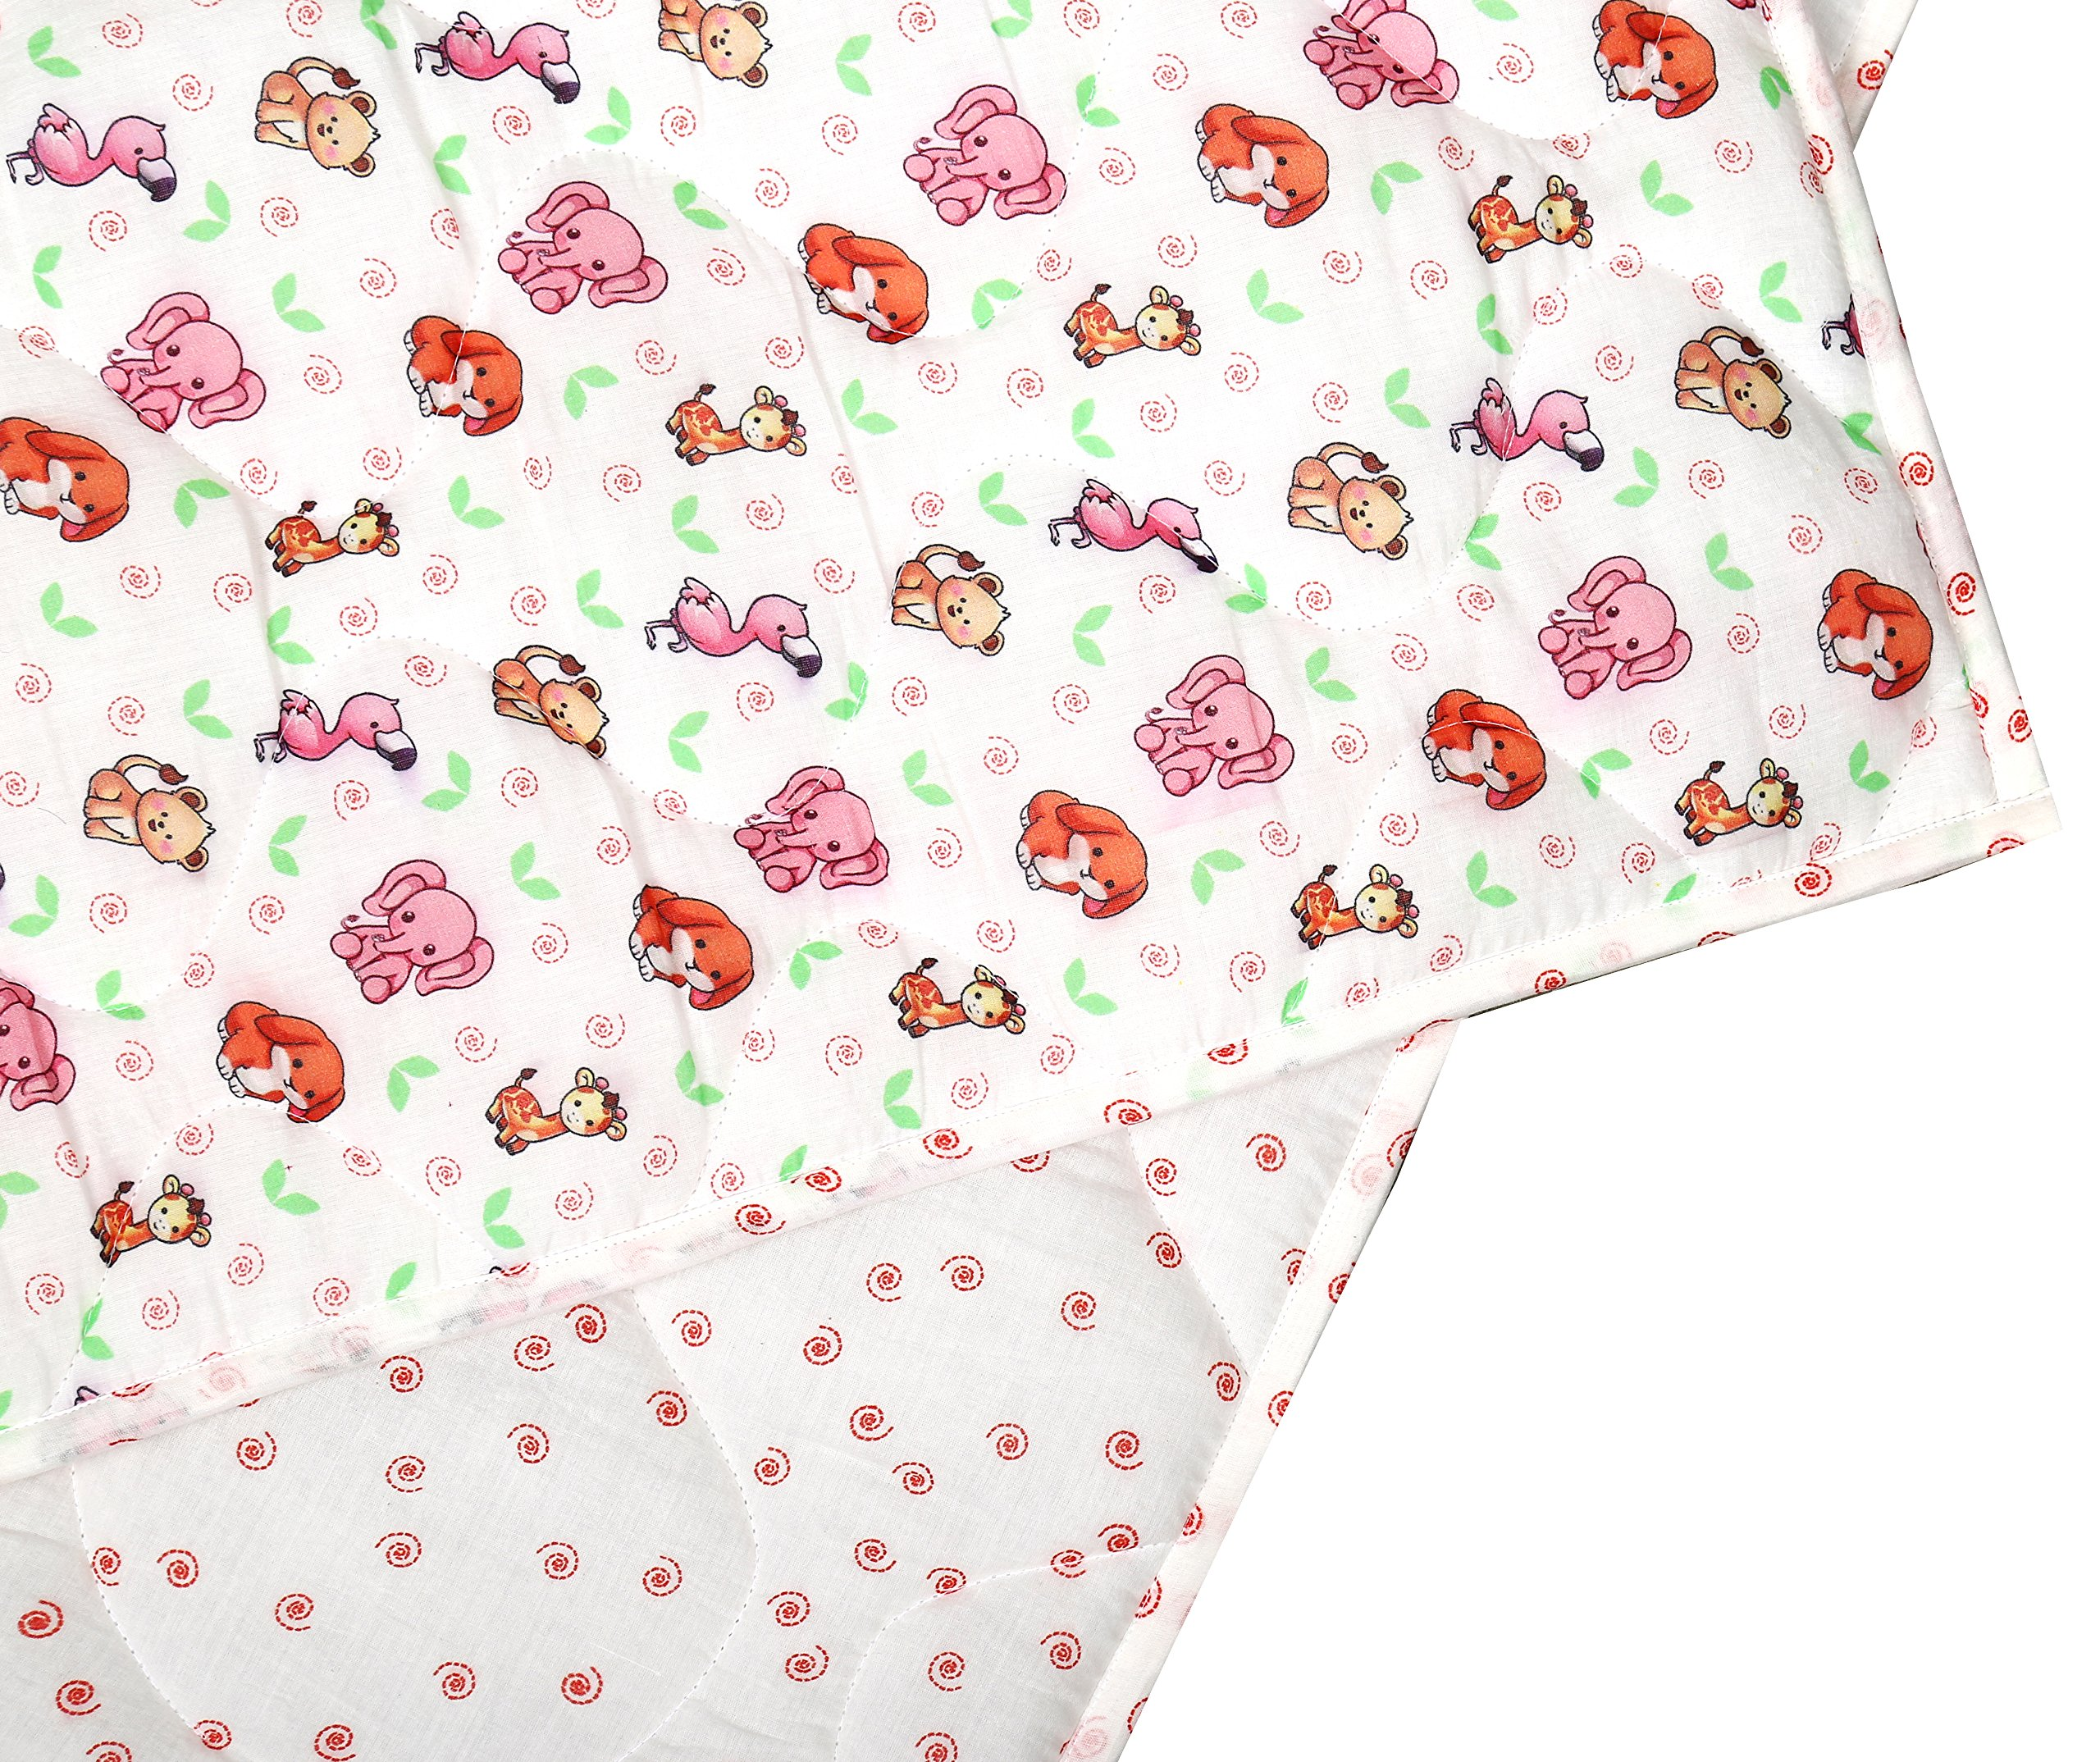 White and Pink Baby Quilt - Warm and Snuggly Toddler Blanket Animal Printed Crib Comforter for New Born Boys & Girls Bed Covers by RAJRANG (Image #6)